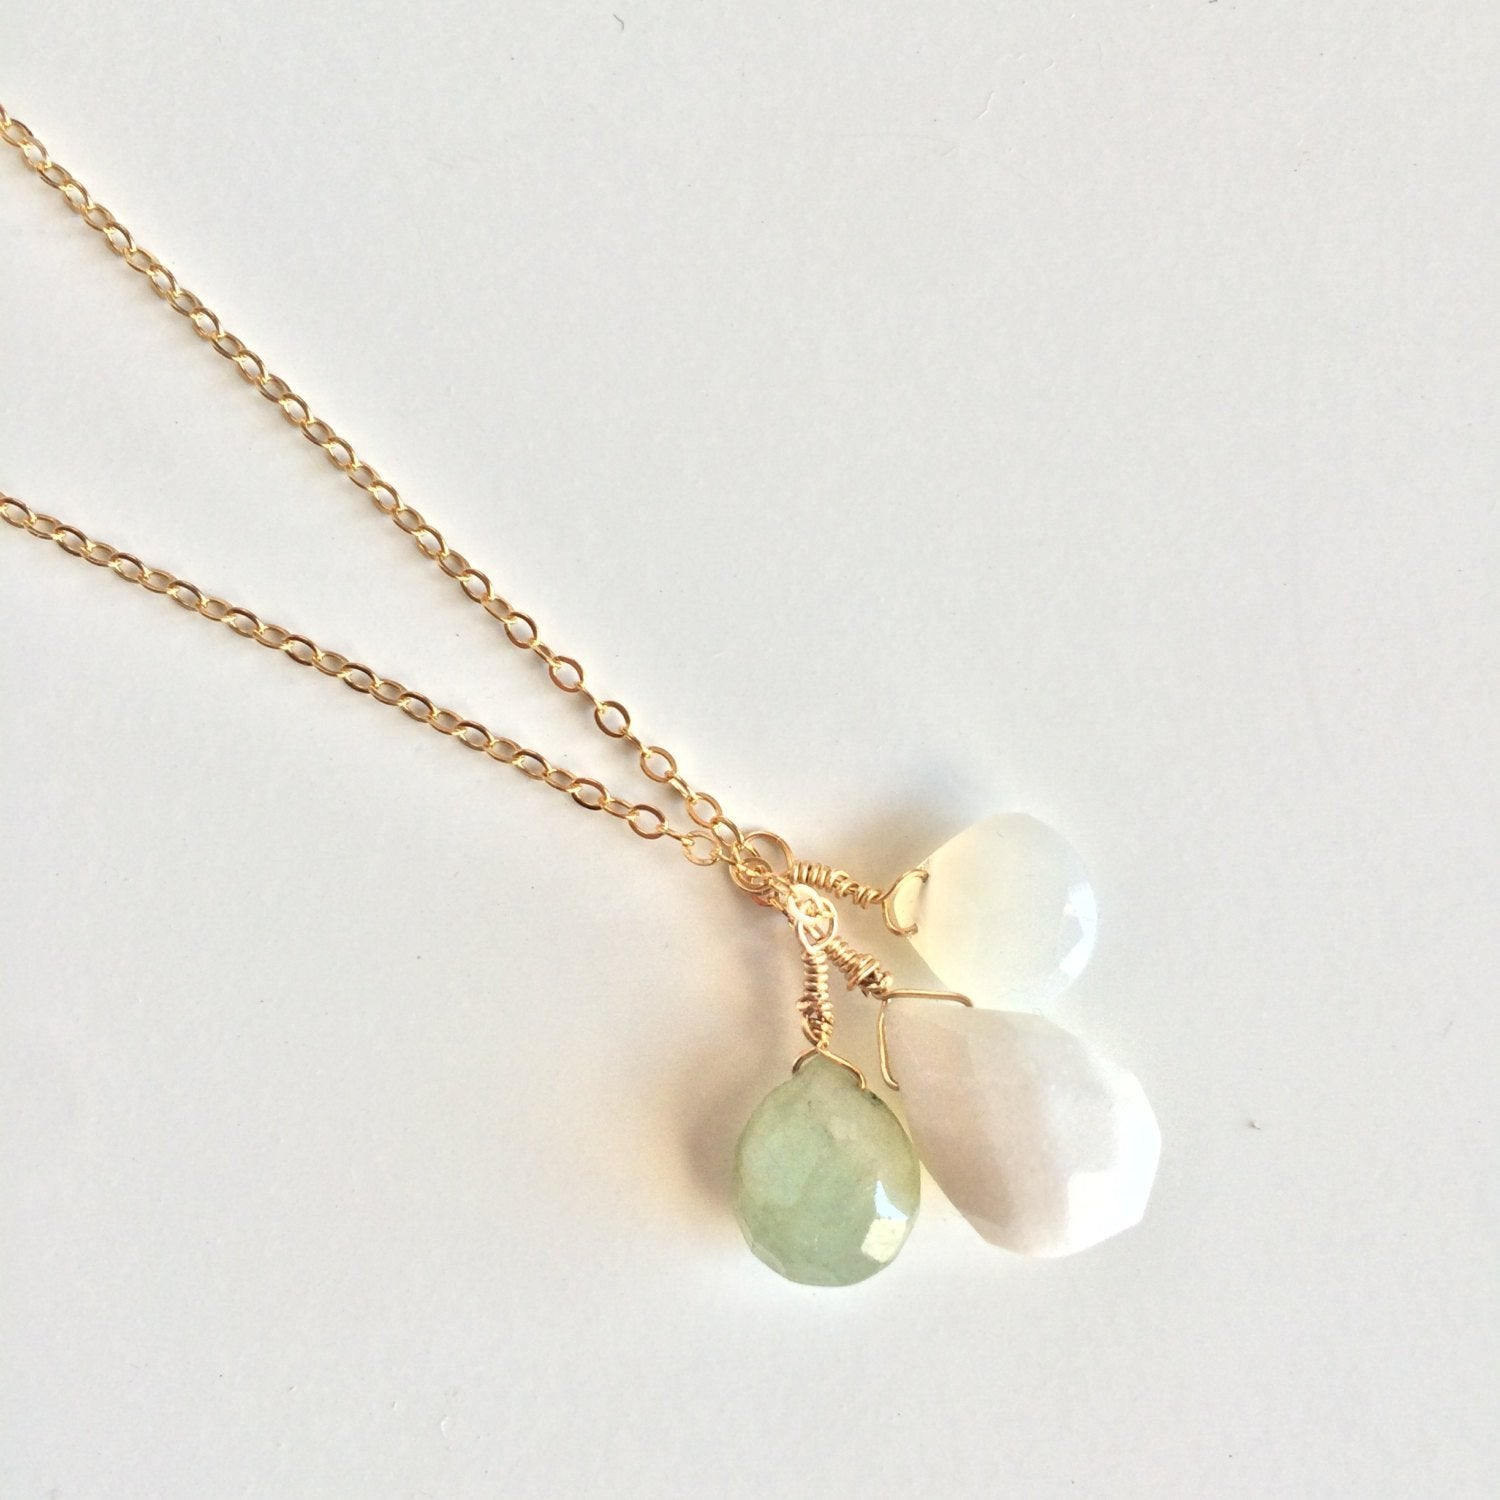 Amazonite, Moonstone and Snow Quartz Sterling Silver Necklace